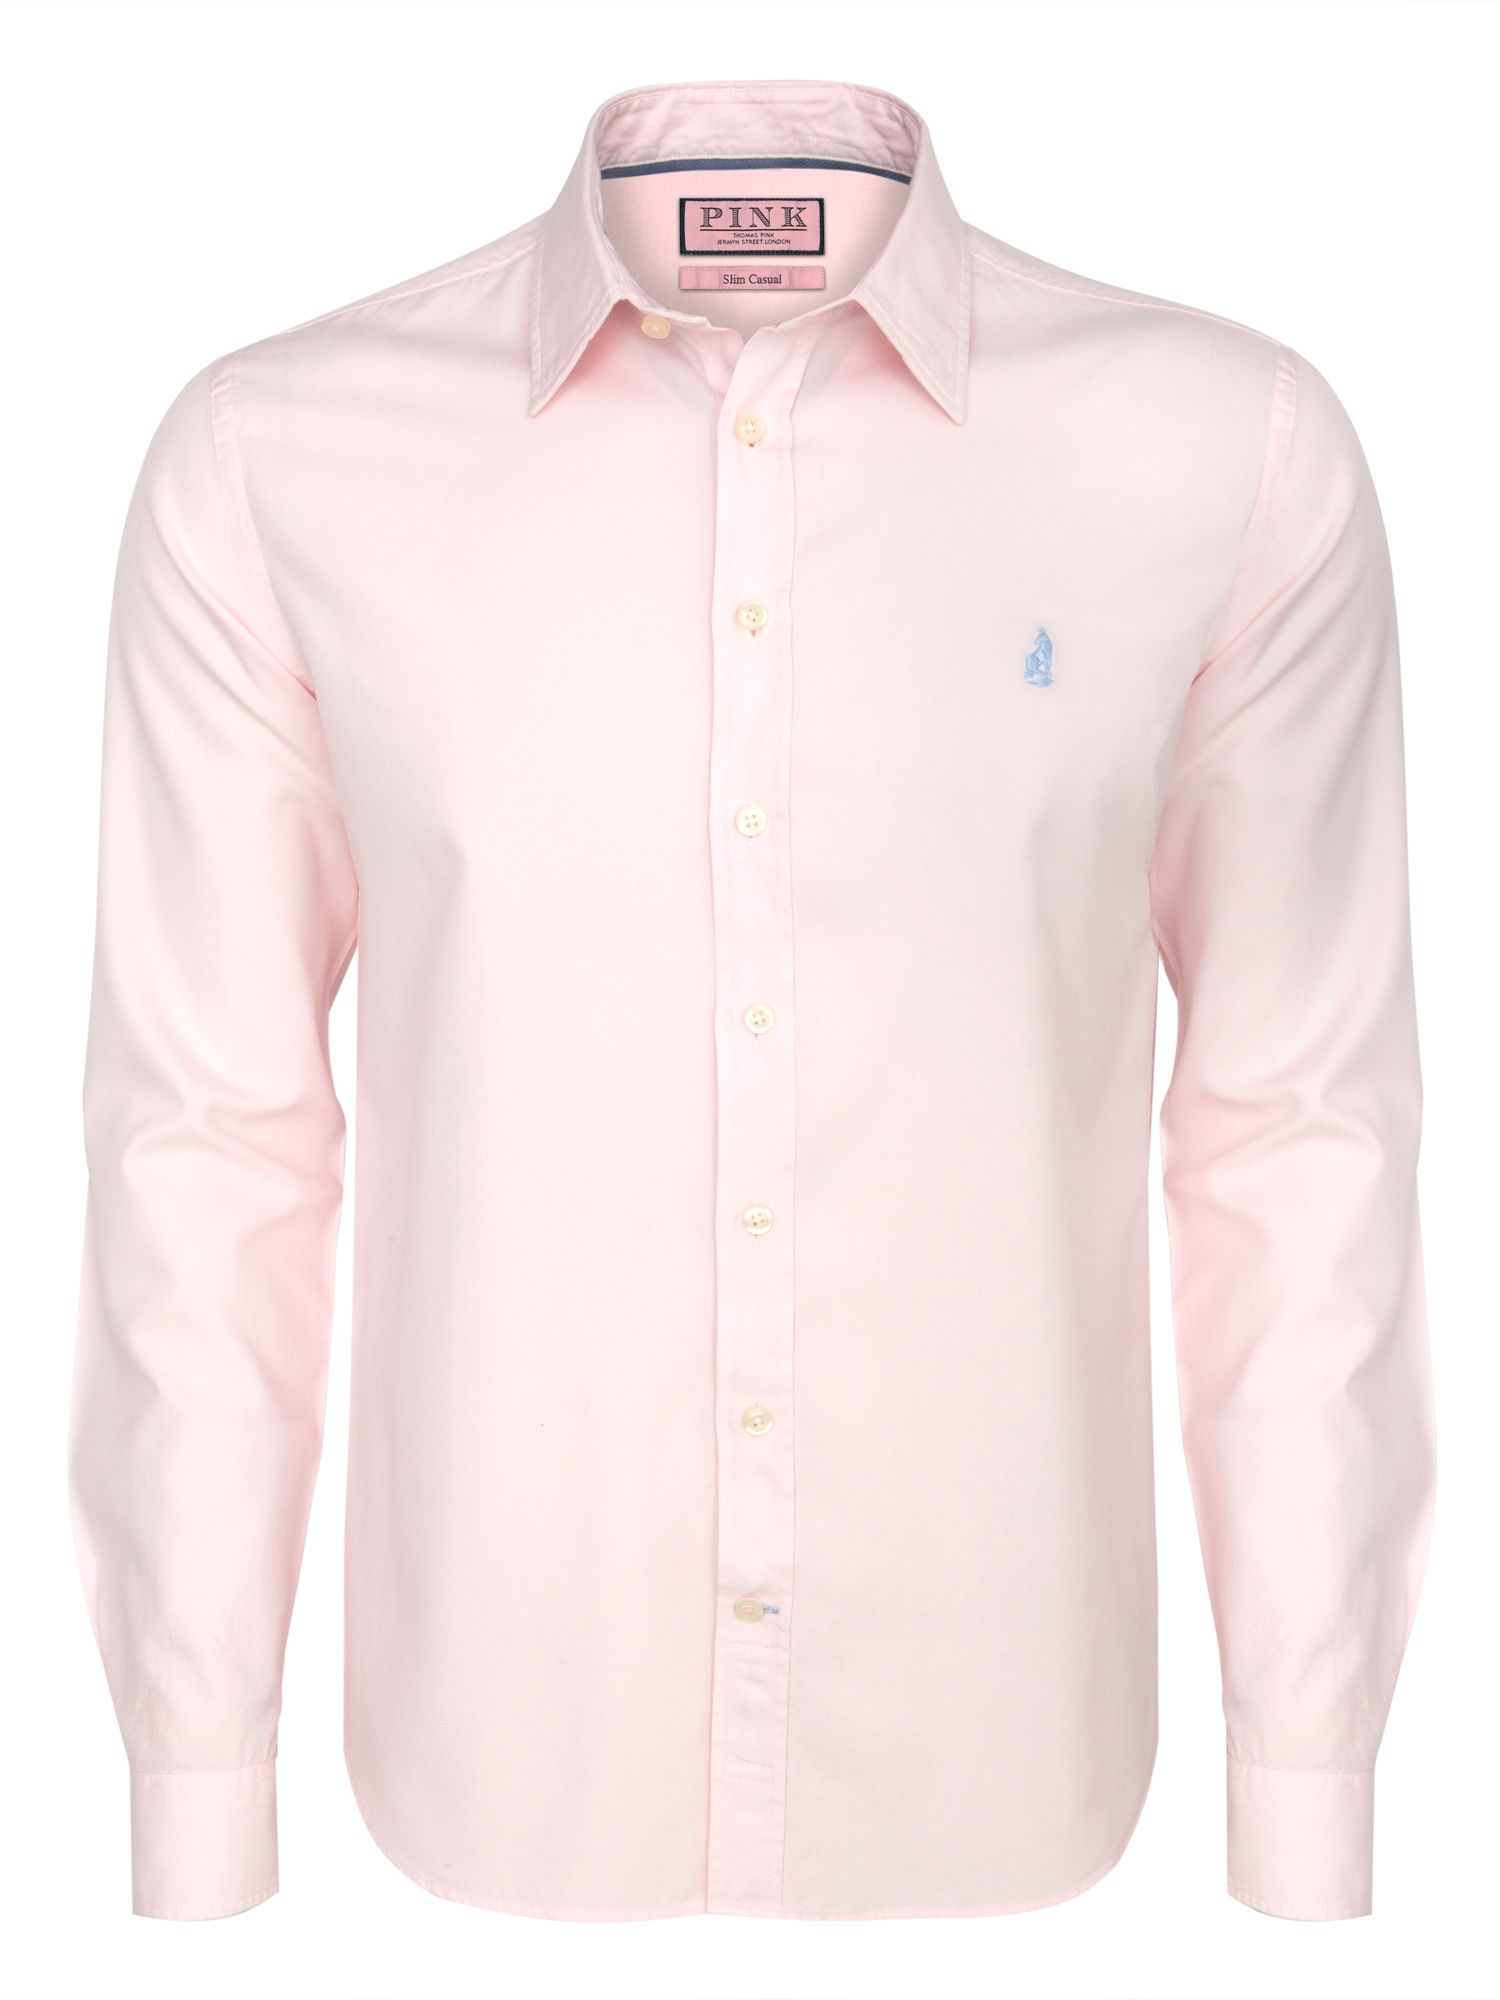 Drake plain long sleeve shirt